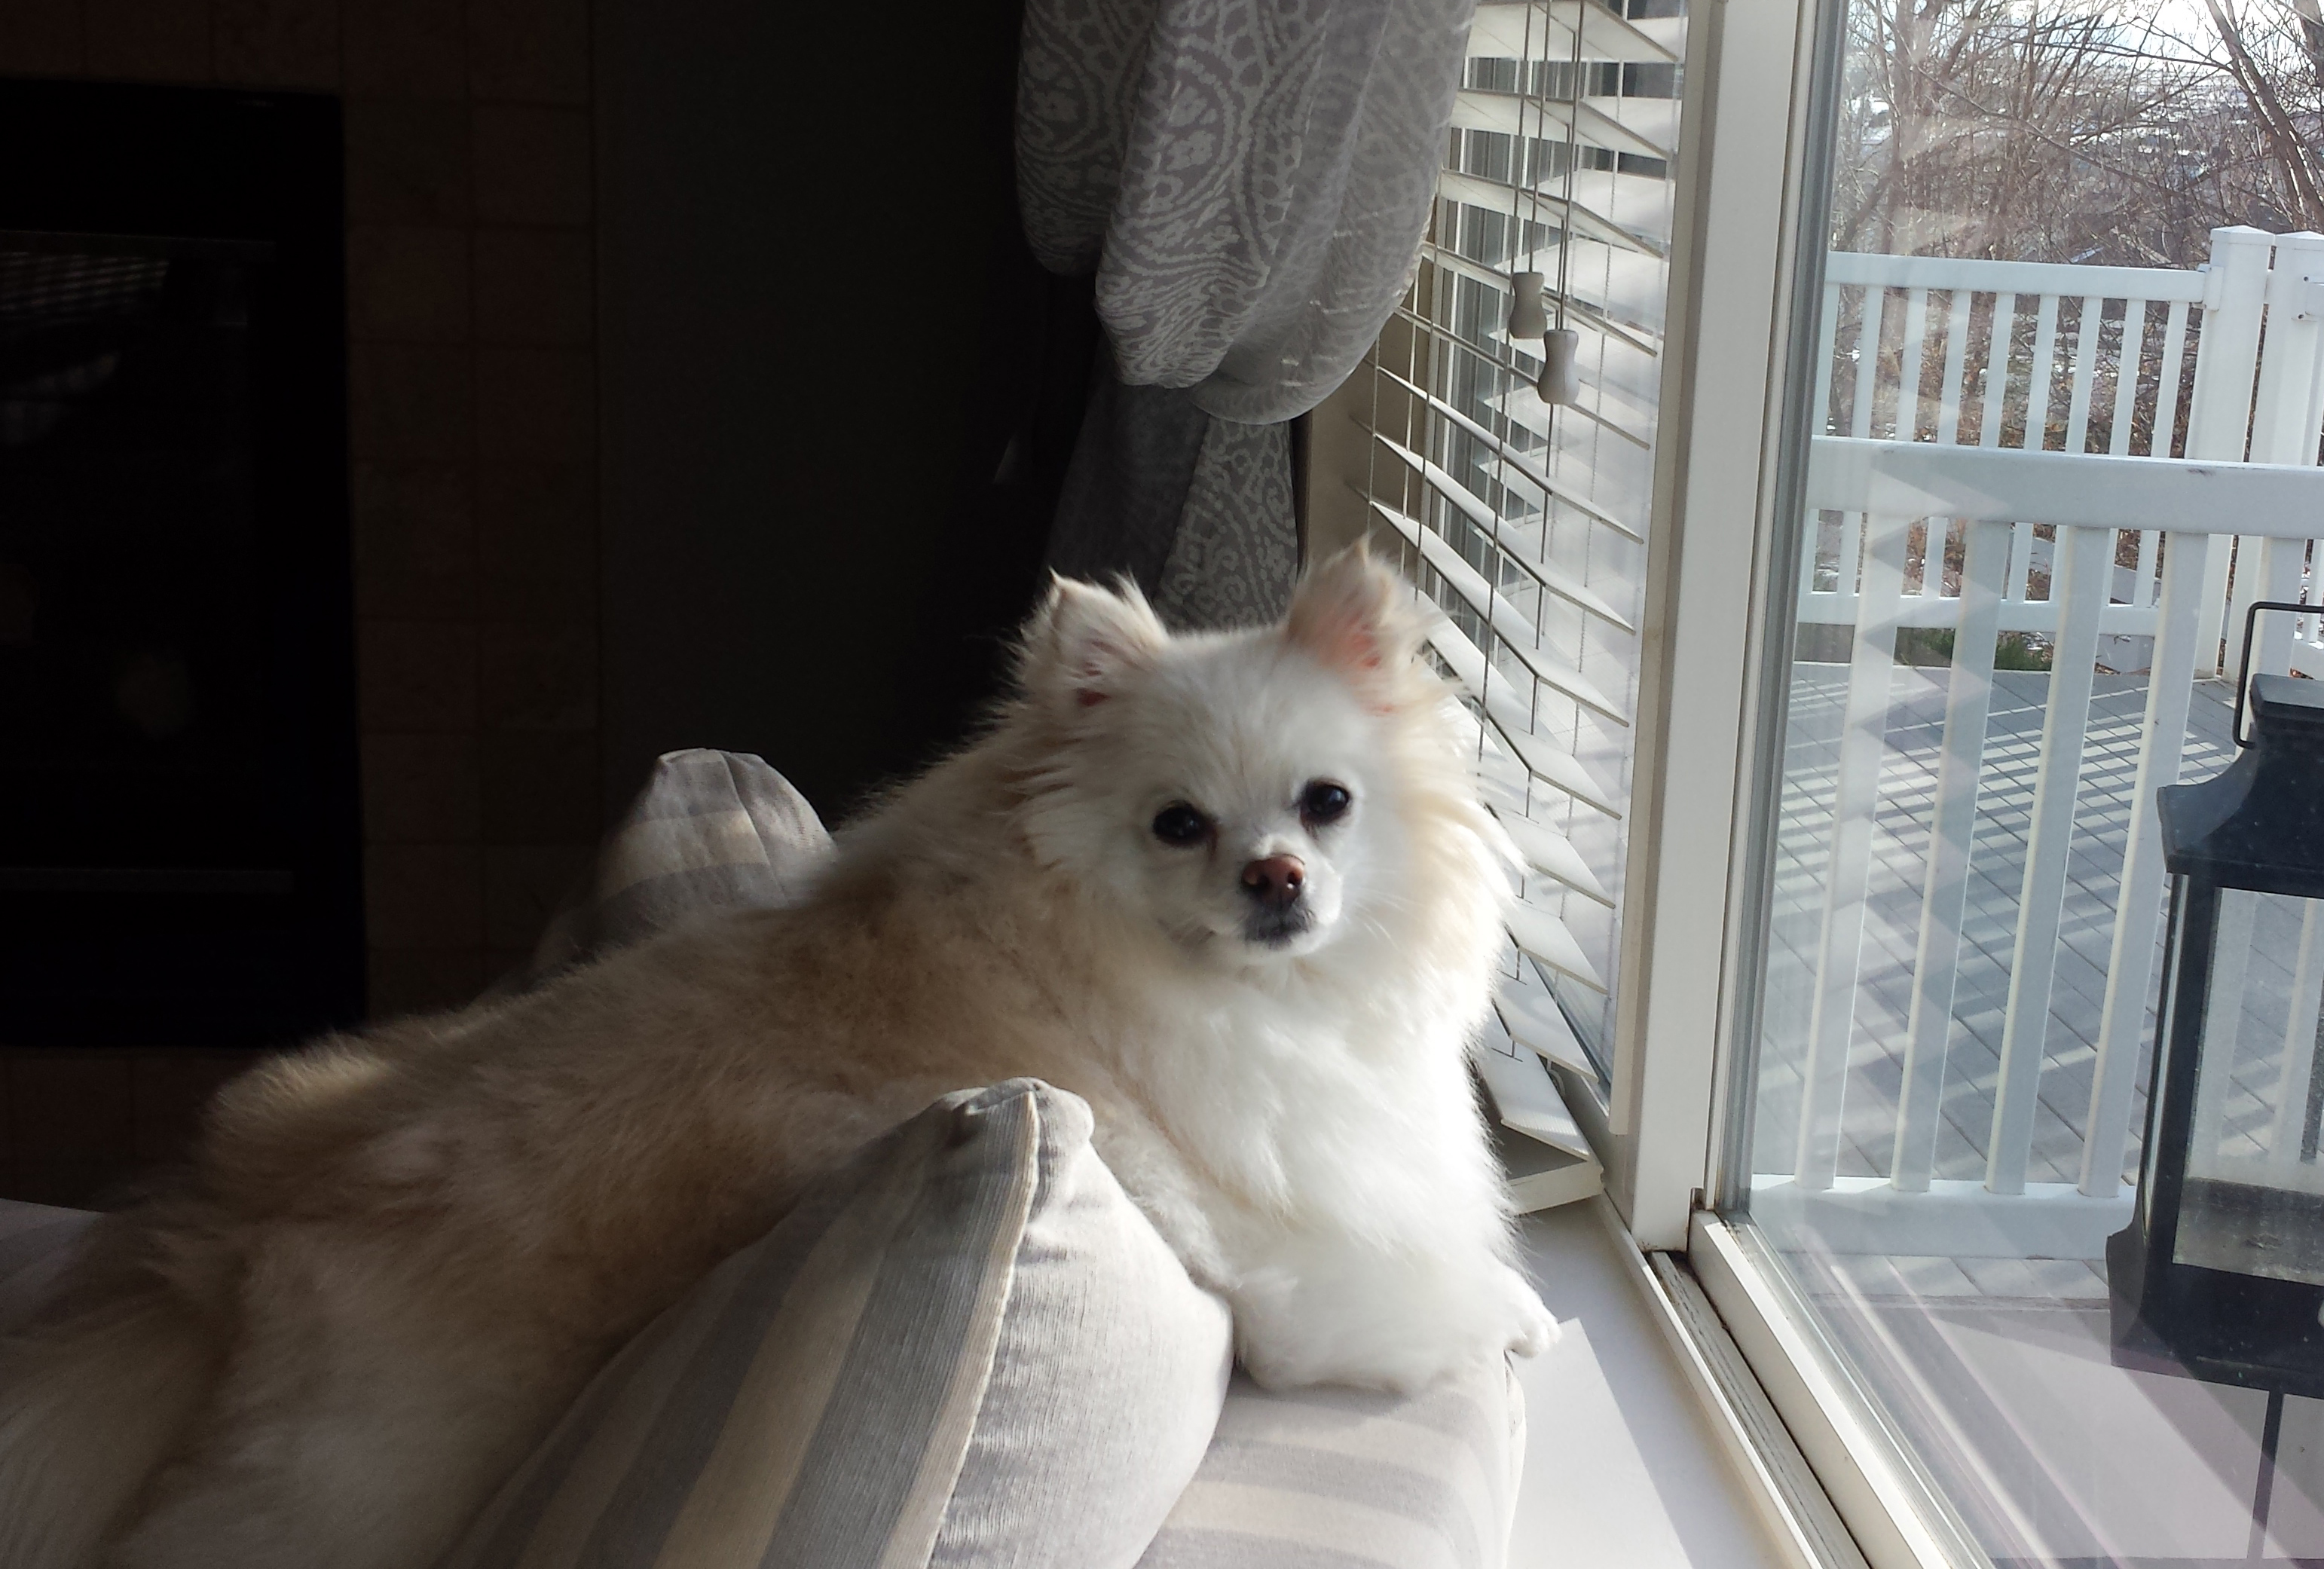 Pomeranian on back of couch looking out window